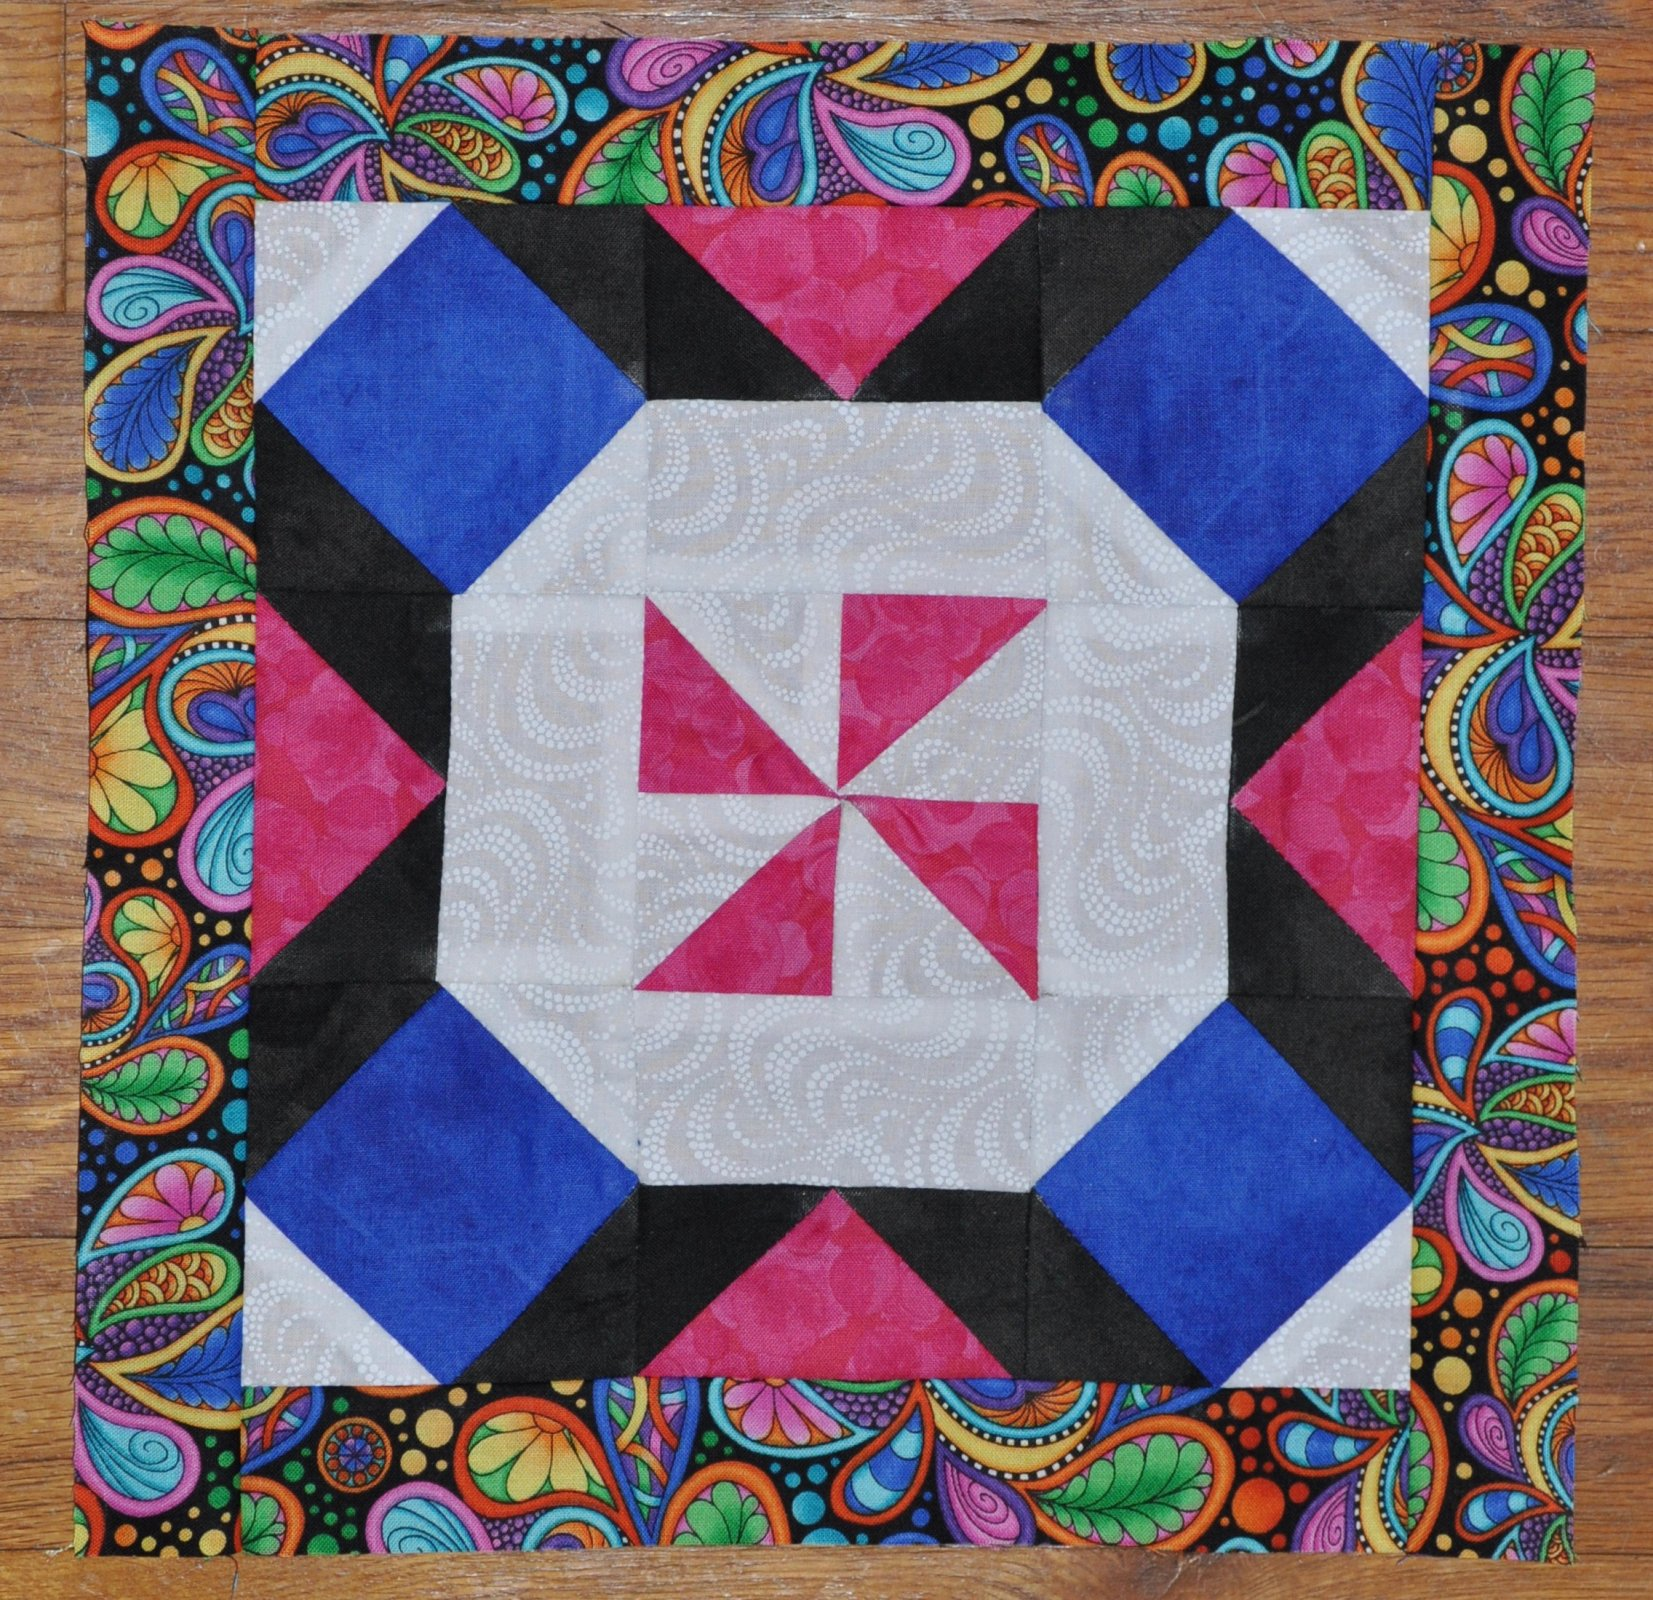 2019 Mystery Block of the Month - March